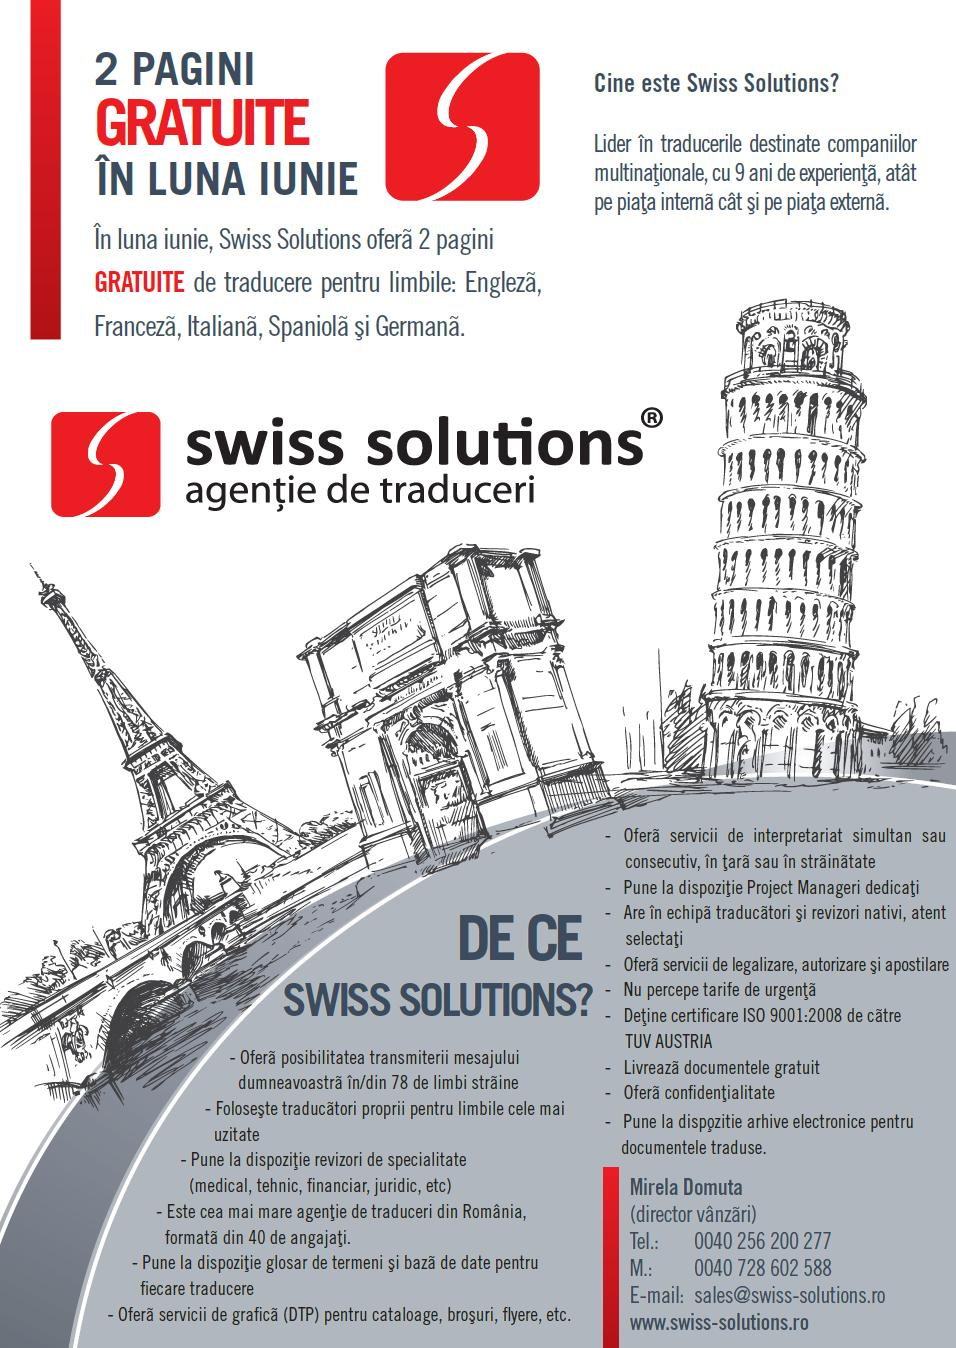 SwissSolutions